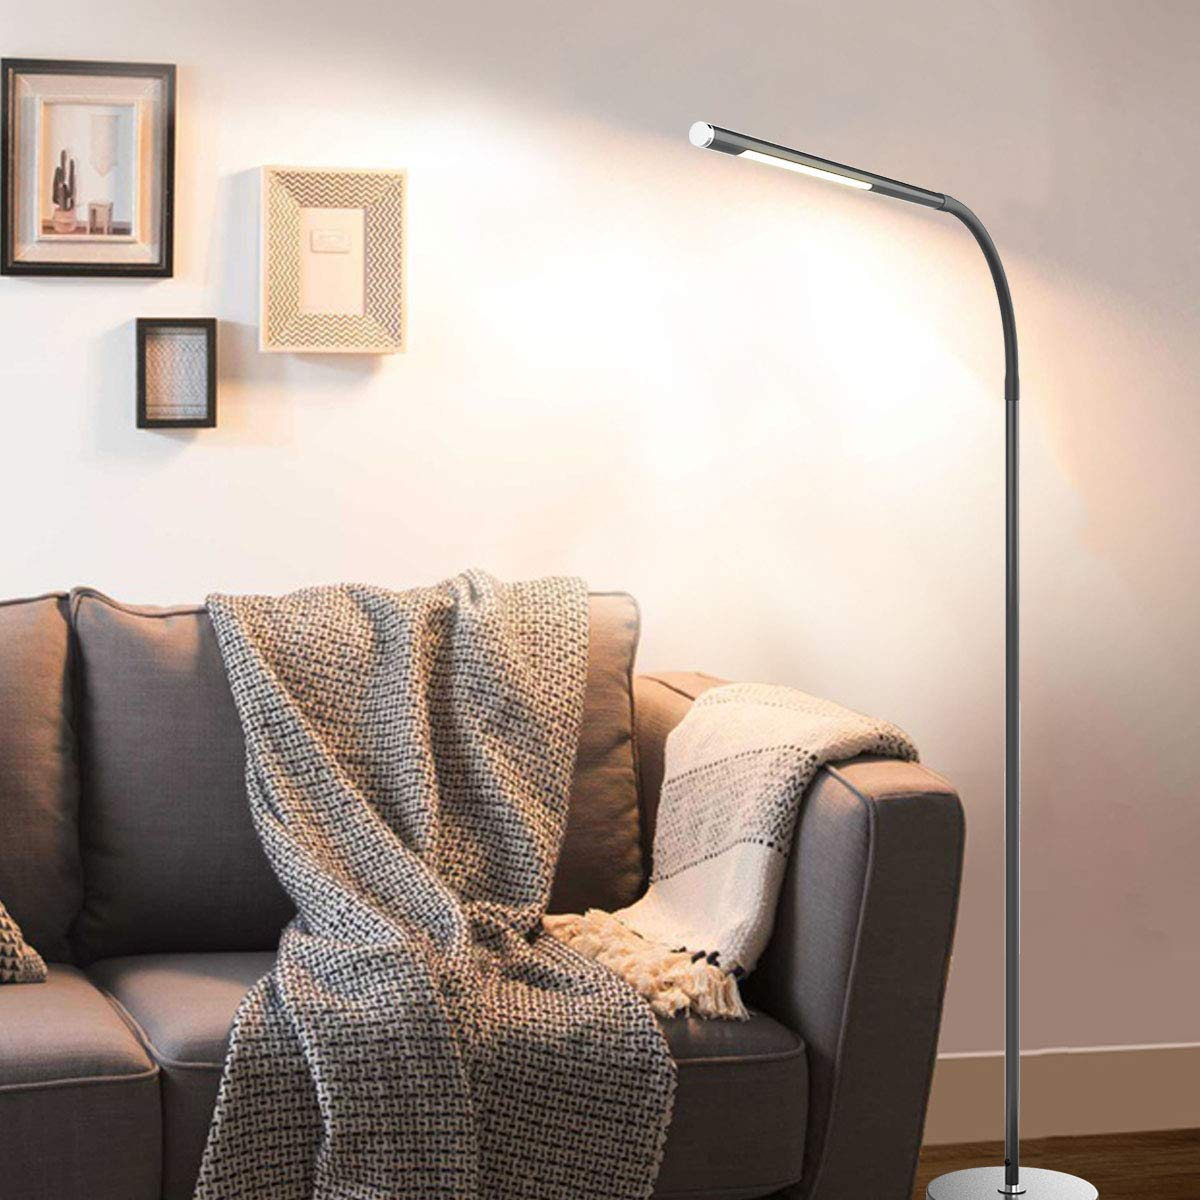 Joly Joy LED Modern Floor Lamps, Flexible Gooseneck Standing Reading Light W/Stable Base, 4 Color & 5 Brightness Dimmer, Touch & Remote Control, for Living Room, Chair, Couch, Office Task (Black) by Joly Joy (Image #8)